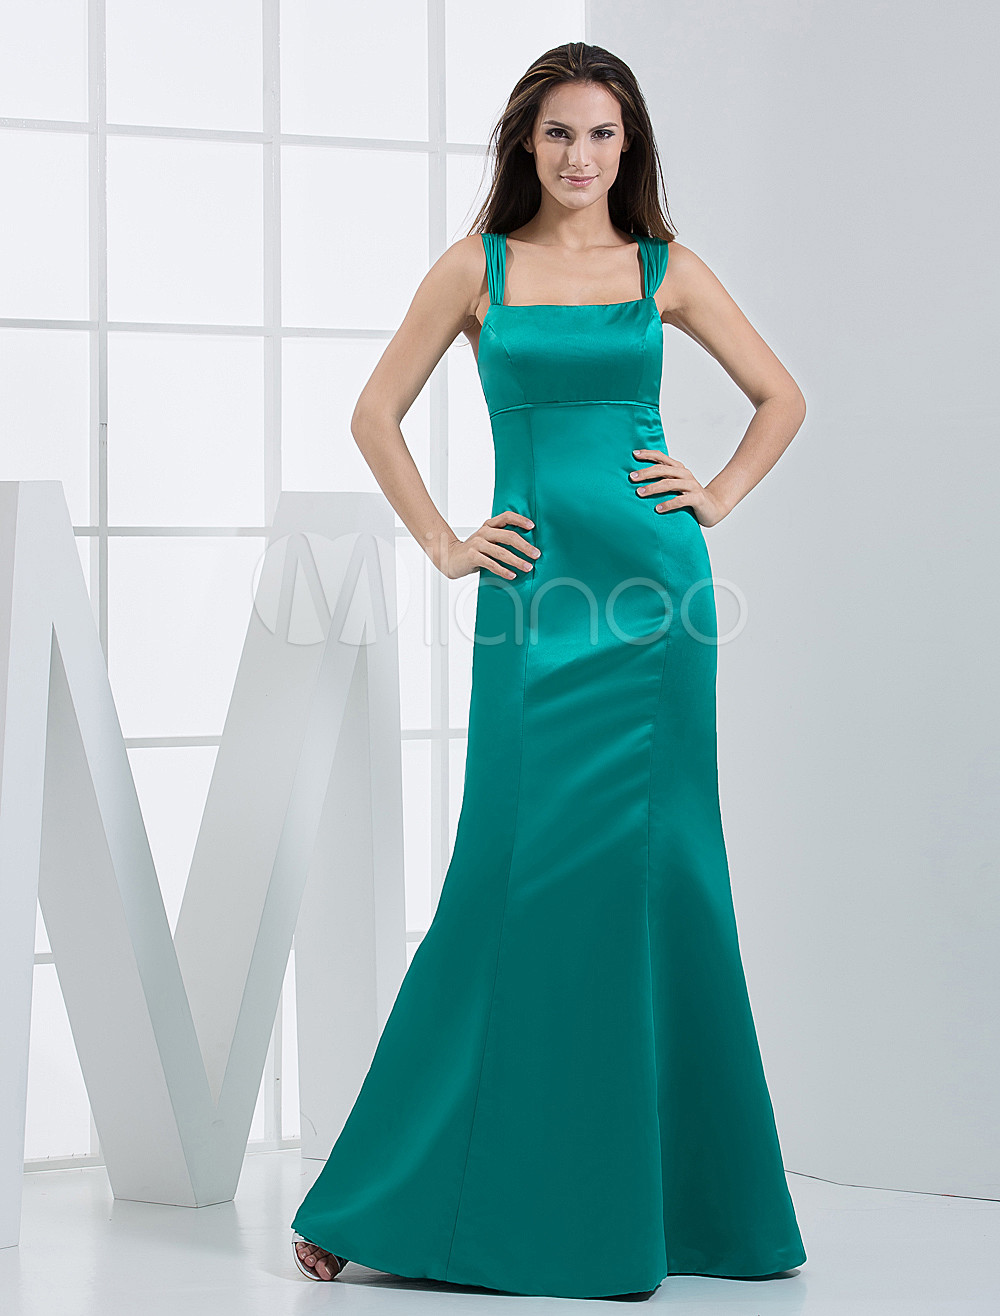 Mermaid Spaghetti Straps Hunter Green Satin Bridesmaid Dress